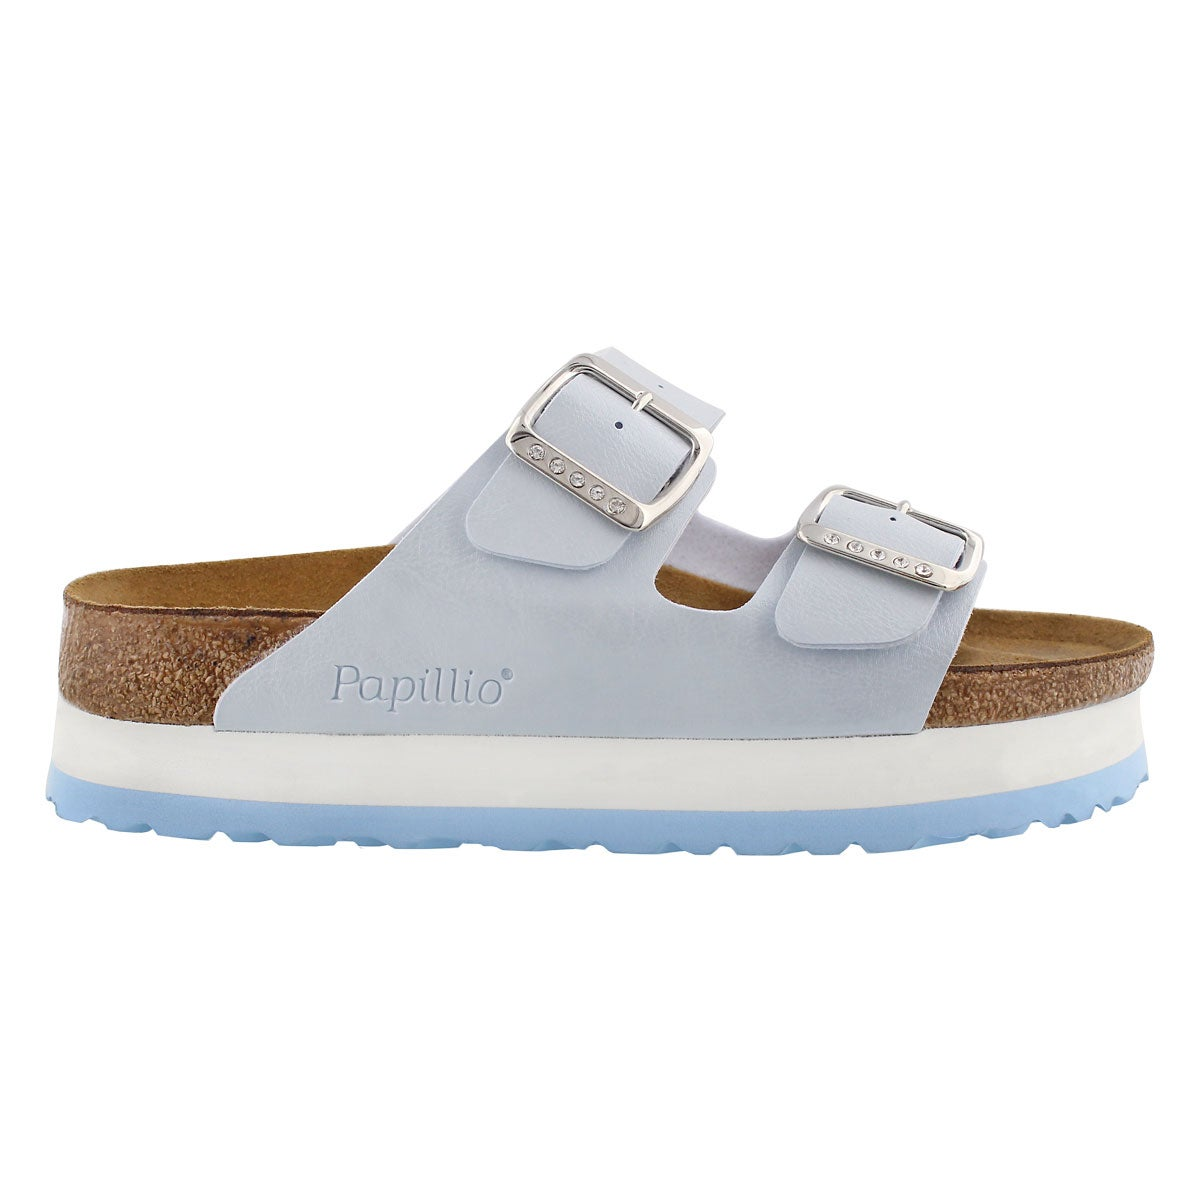 Lds Arizona blue platform sandal-Narrow